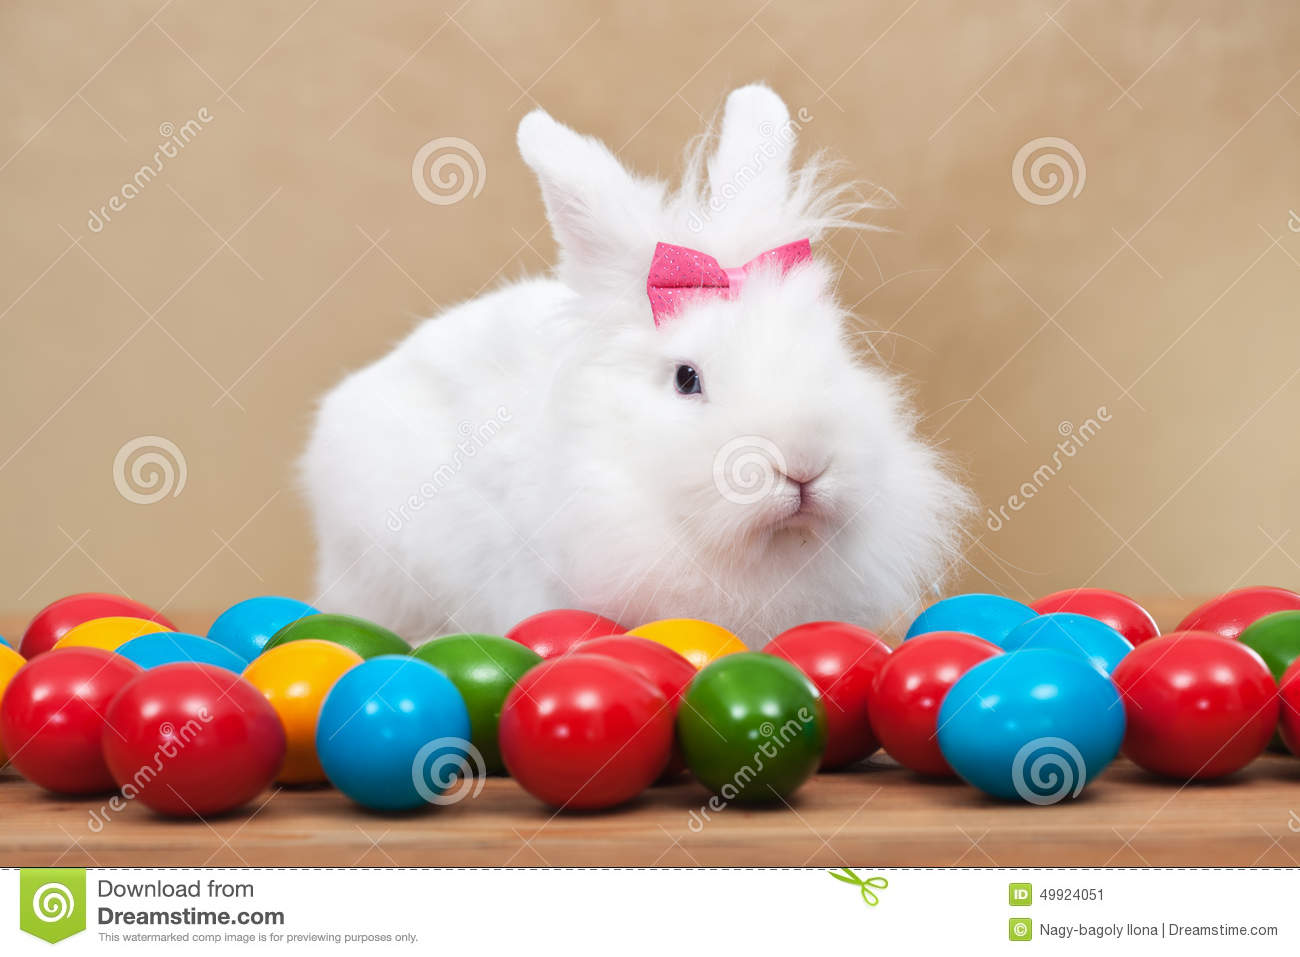 Cockatile Sitting On Easter Eggs 42